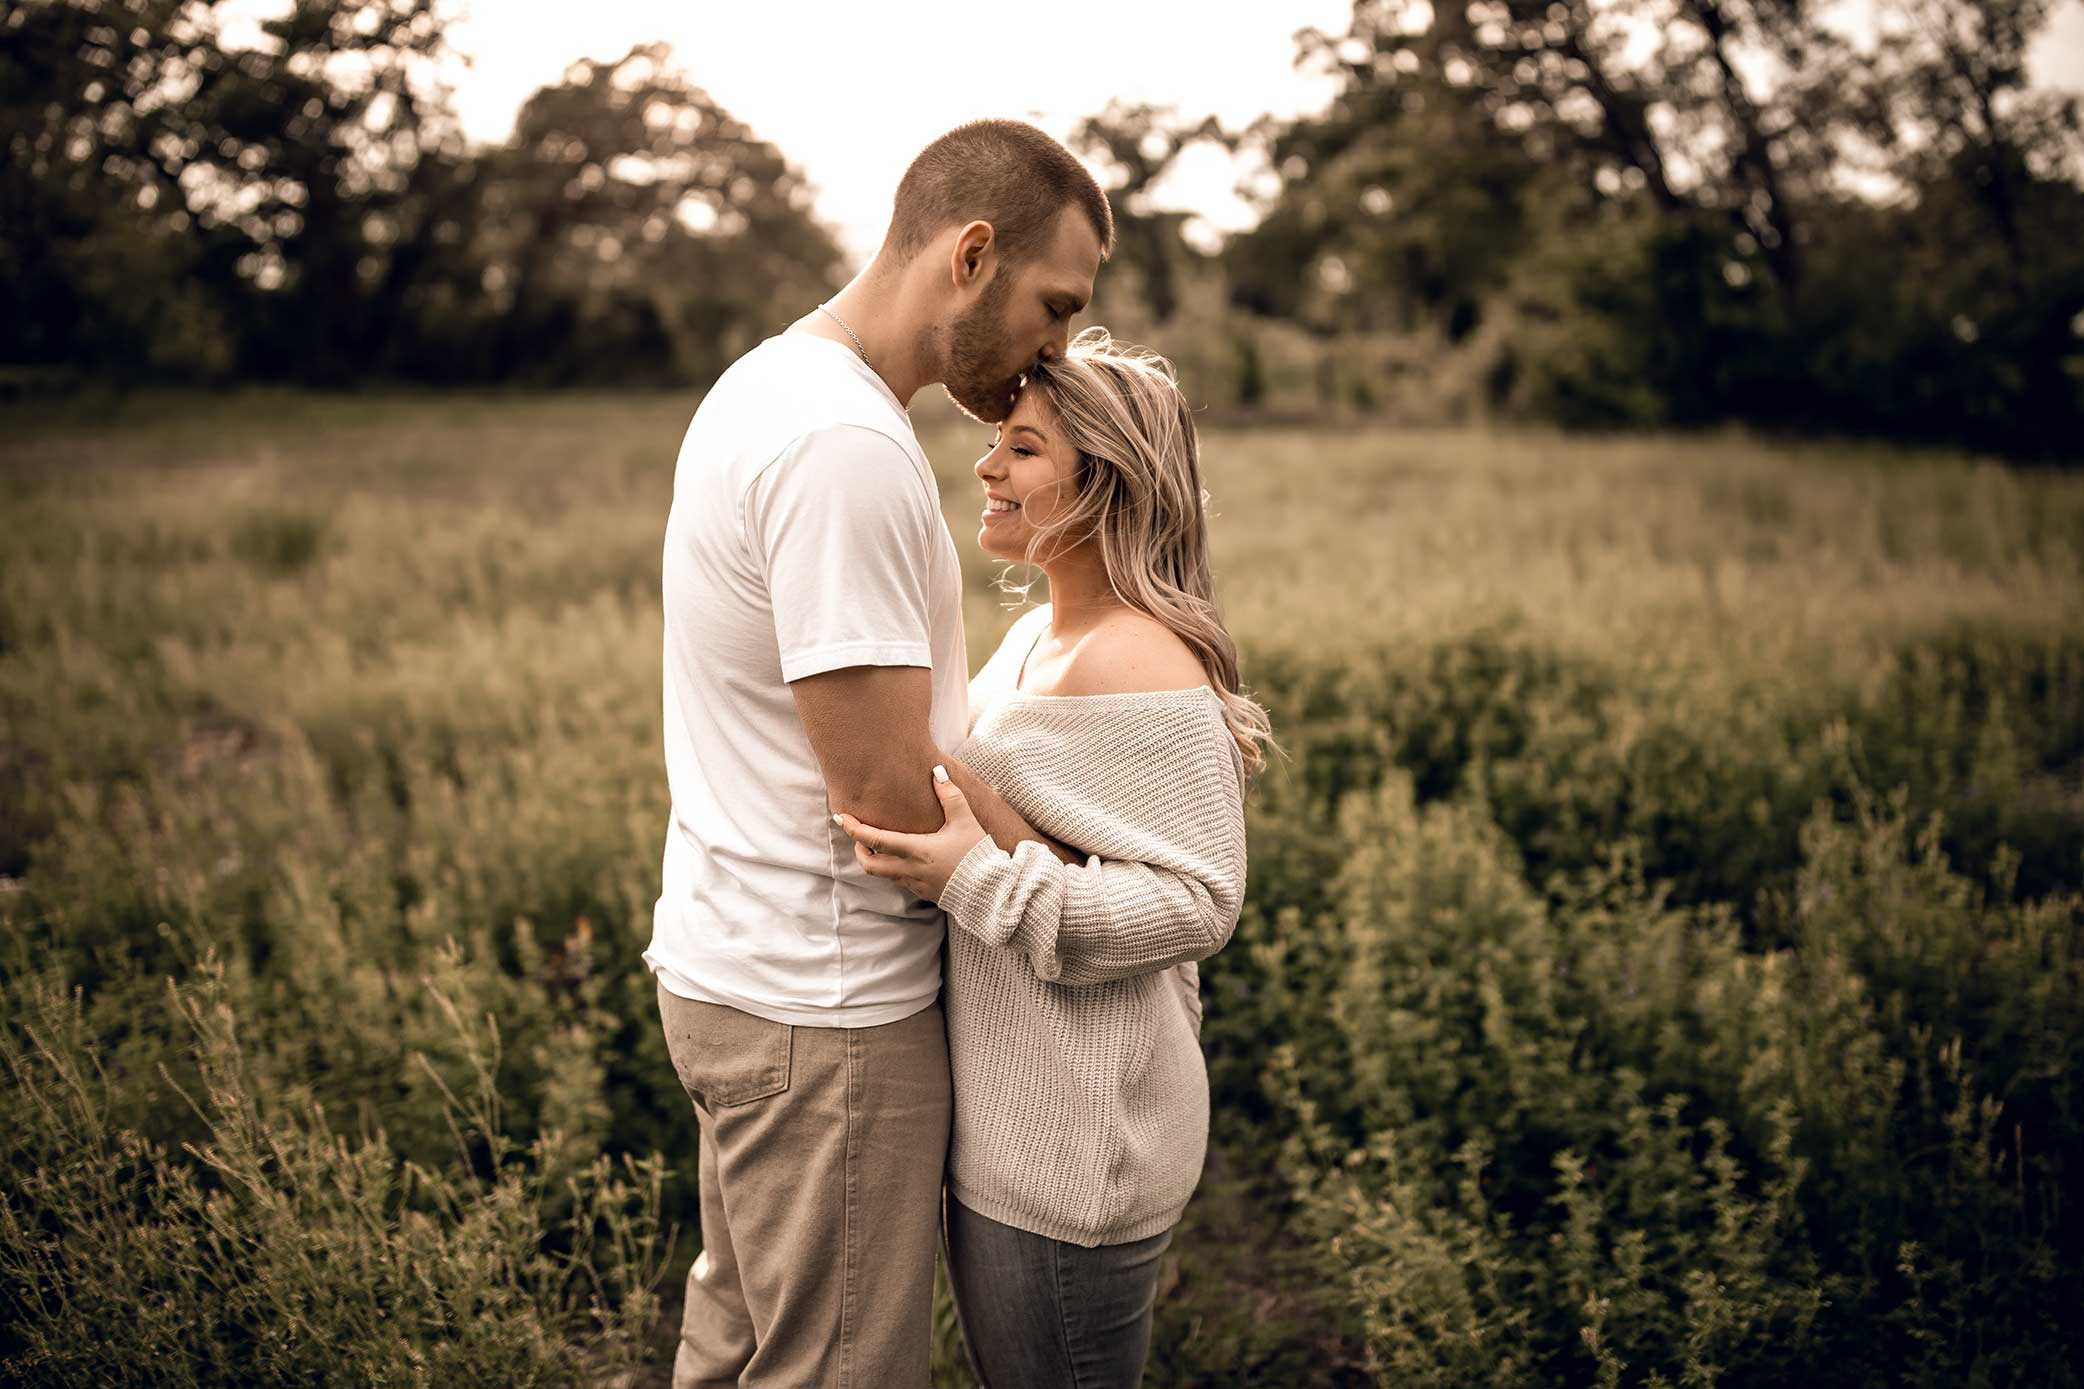 shelby-schiller-photography-lifestyle-couples-remi-colt-outdoor-jeep-adventure-17.jpg